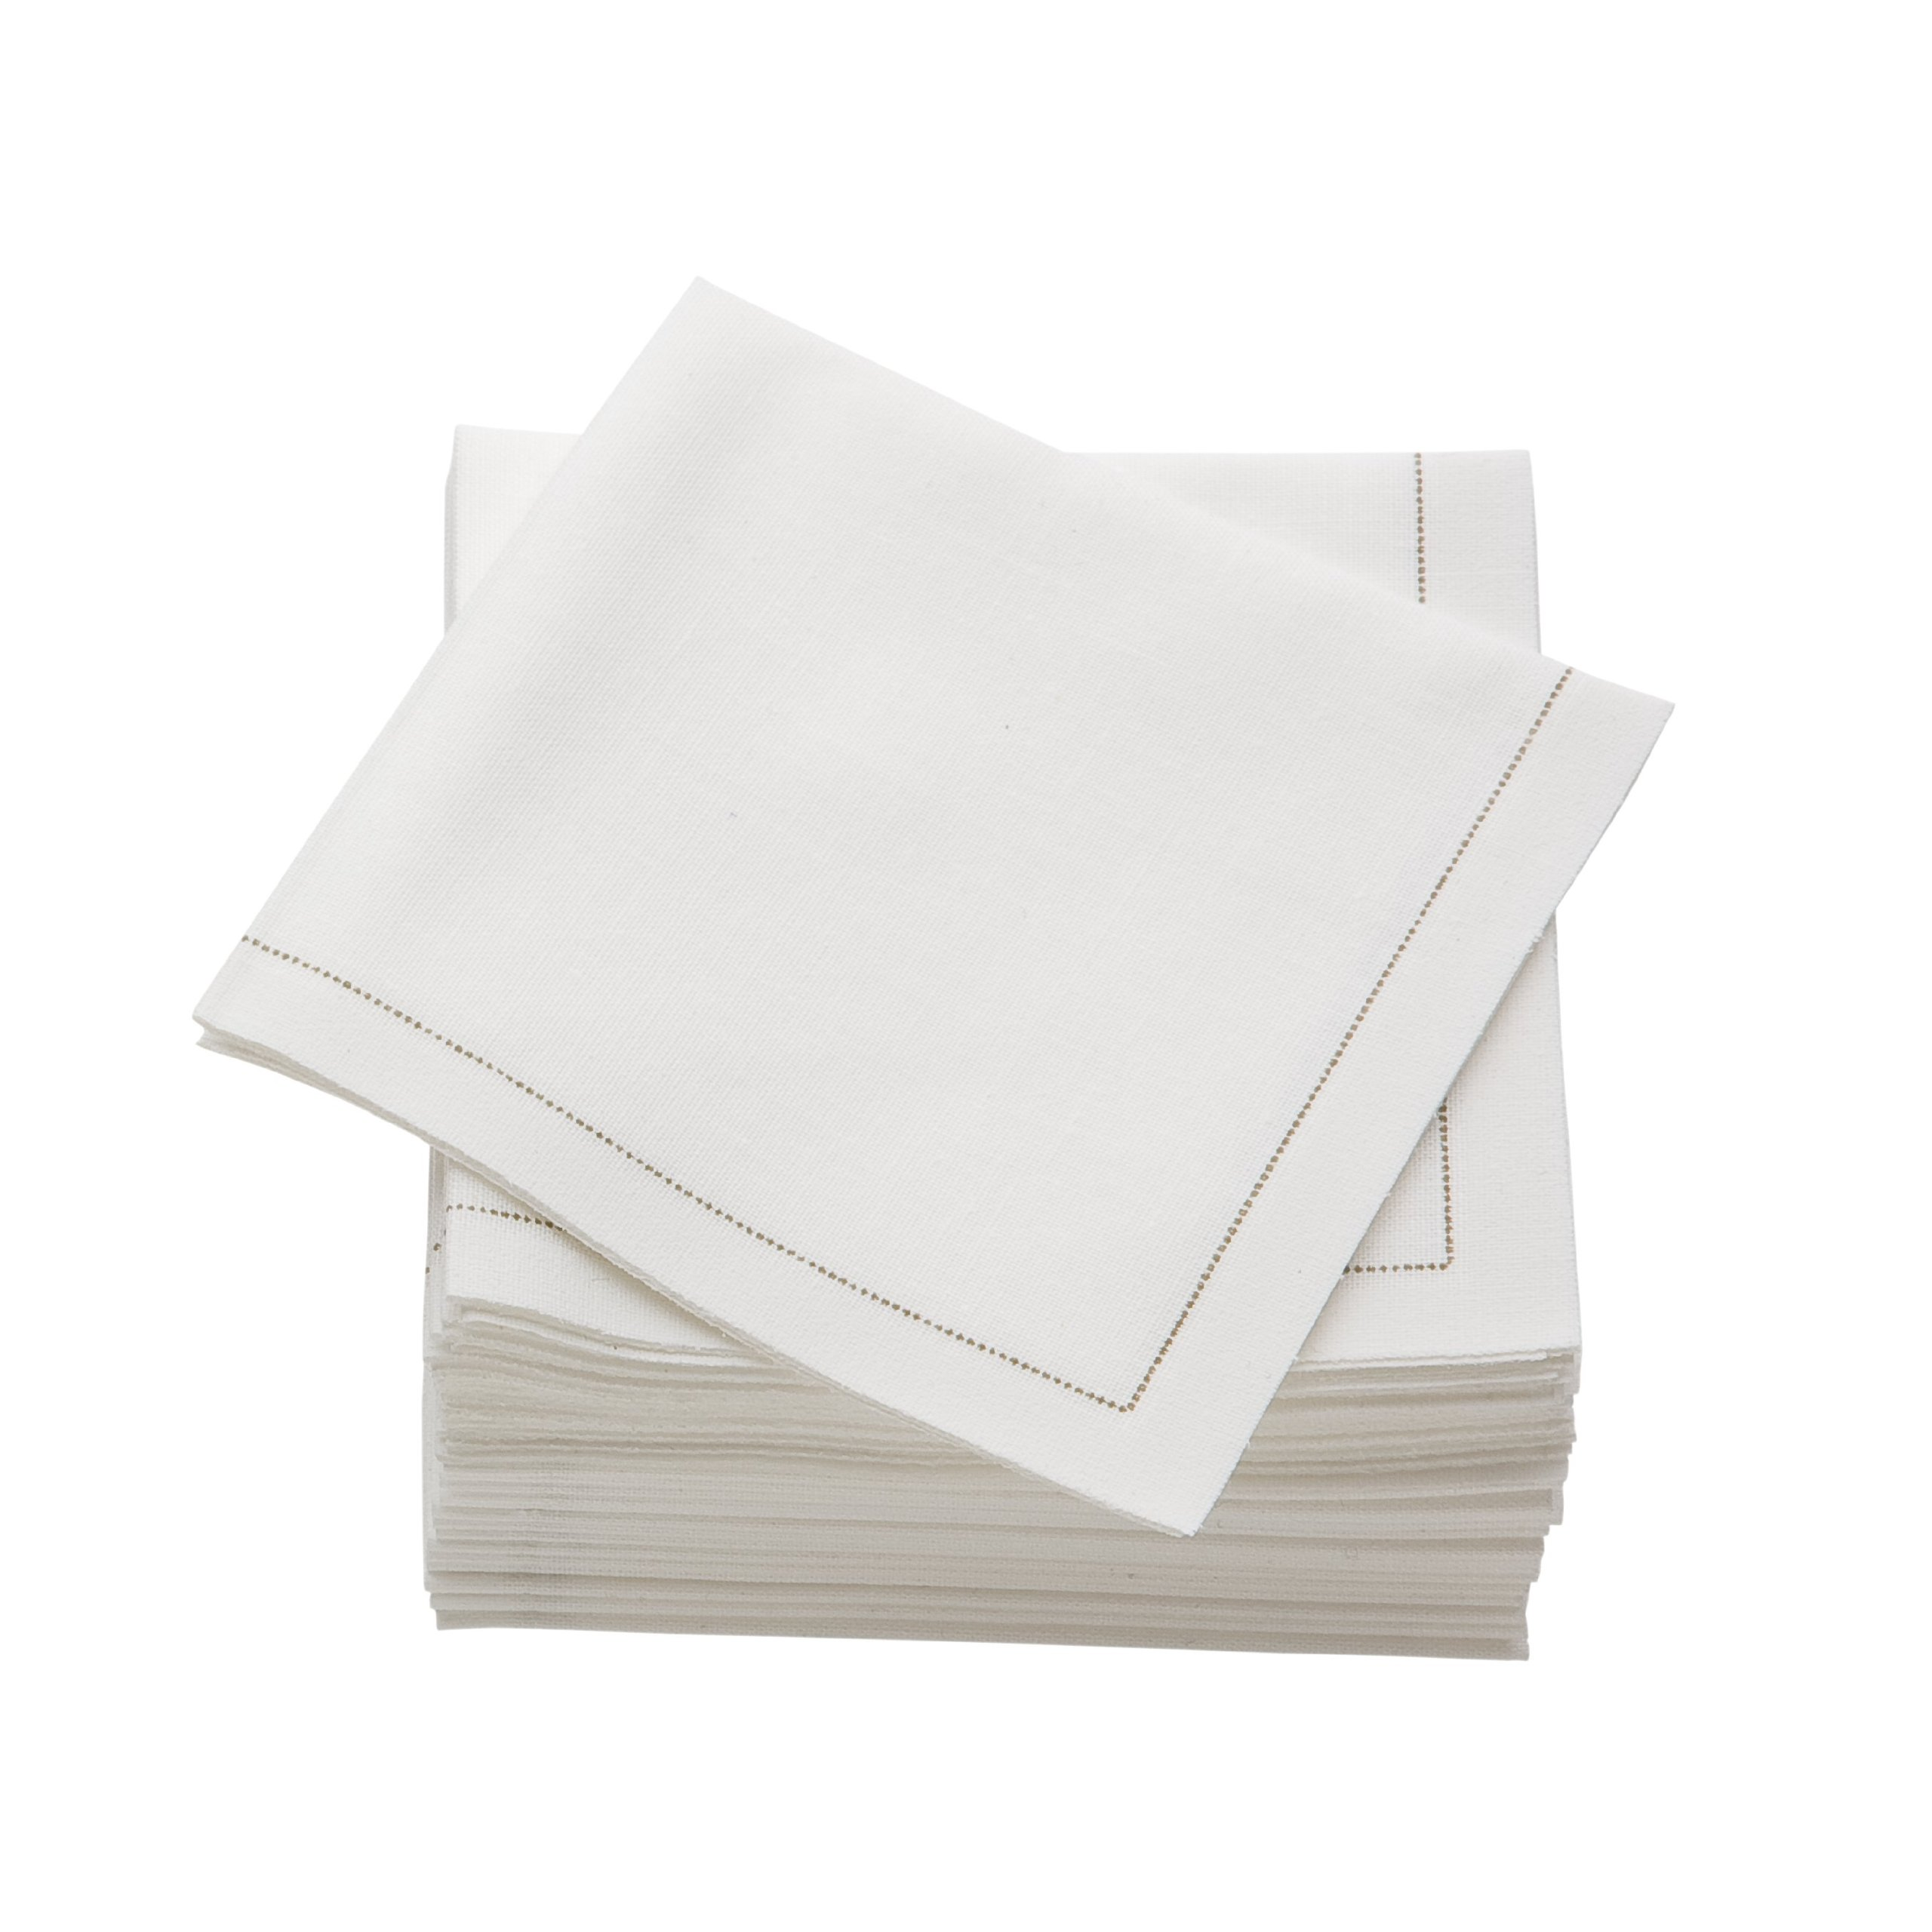 MYdrap SA21/101-5 Pre-folded Cotton Luncheon Napkin, 4.0'' Length x 4.0'' Width, Ecru (Case of 300)